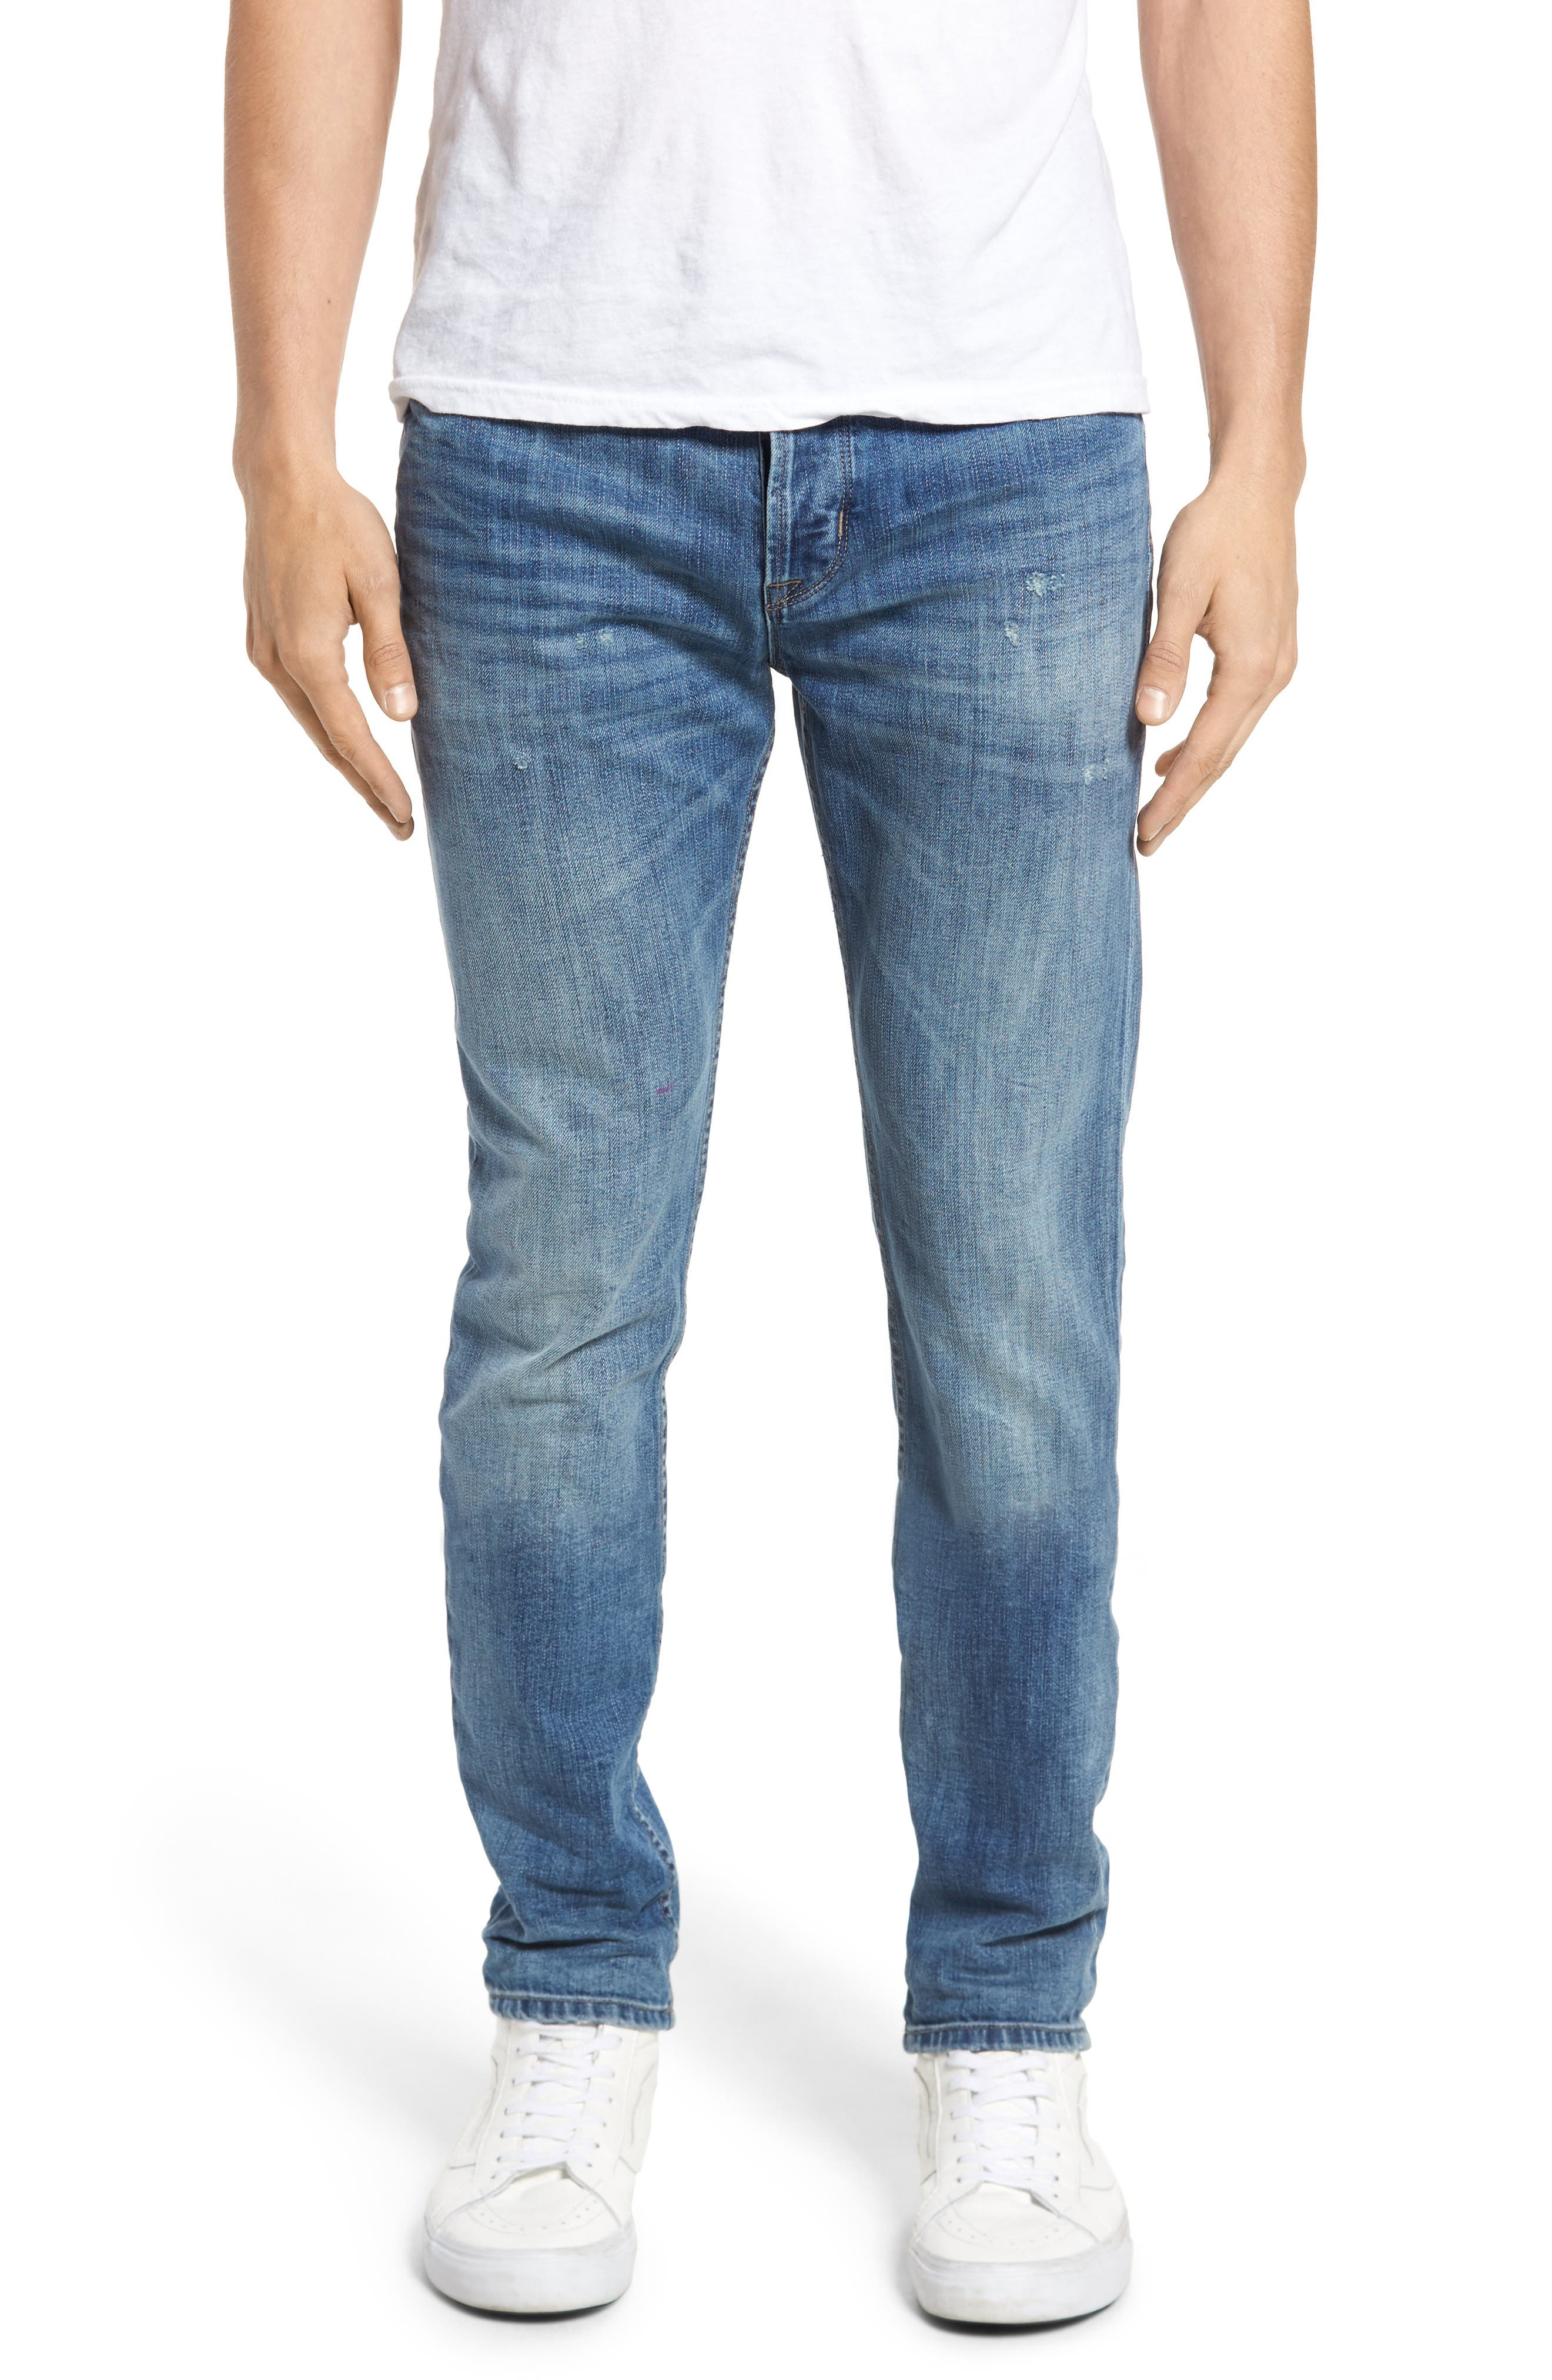 Hudson Jeans Axl Skinny Fit Jeans (Racking)